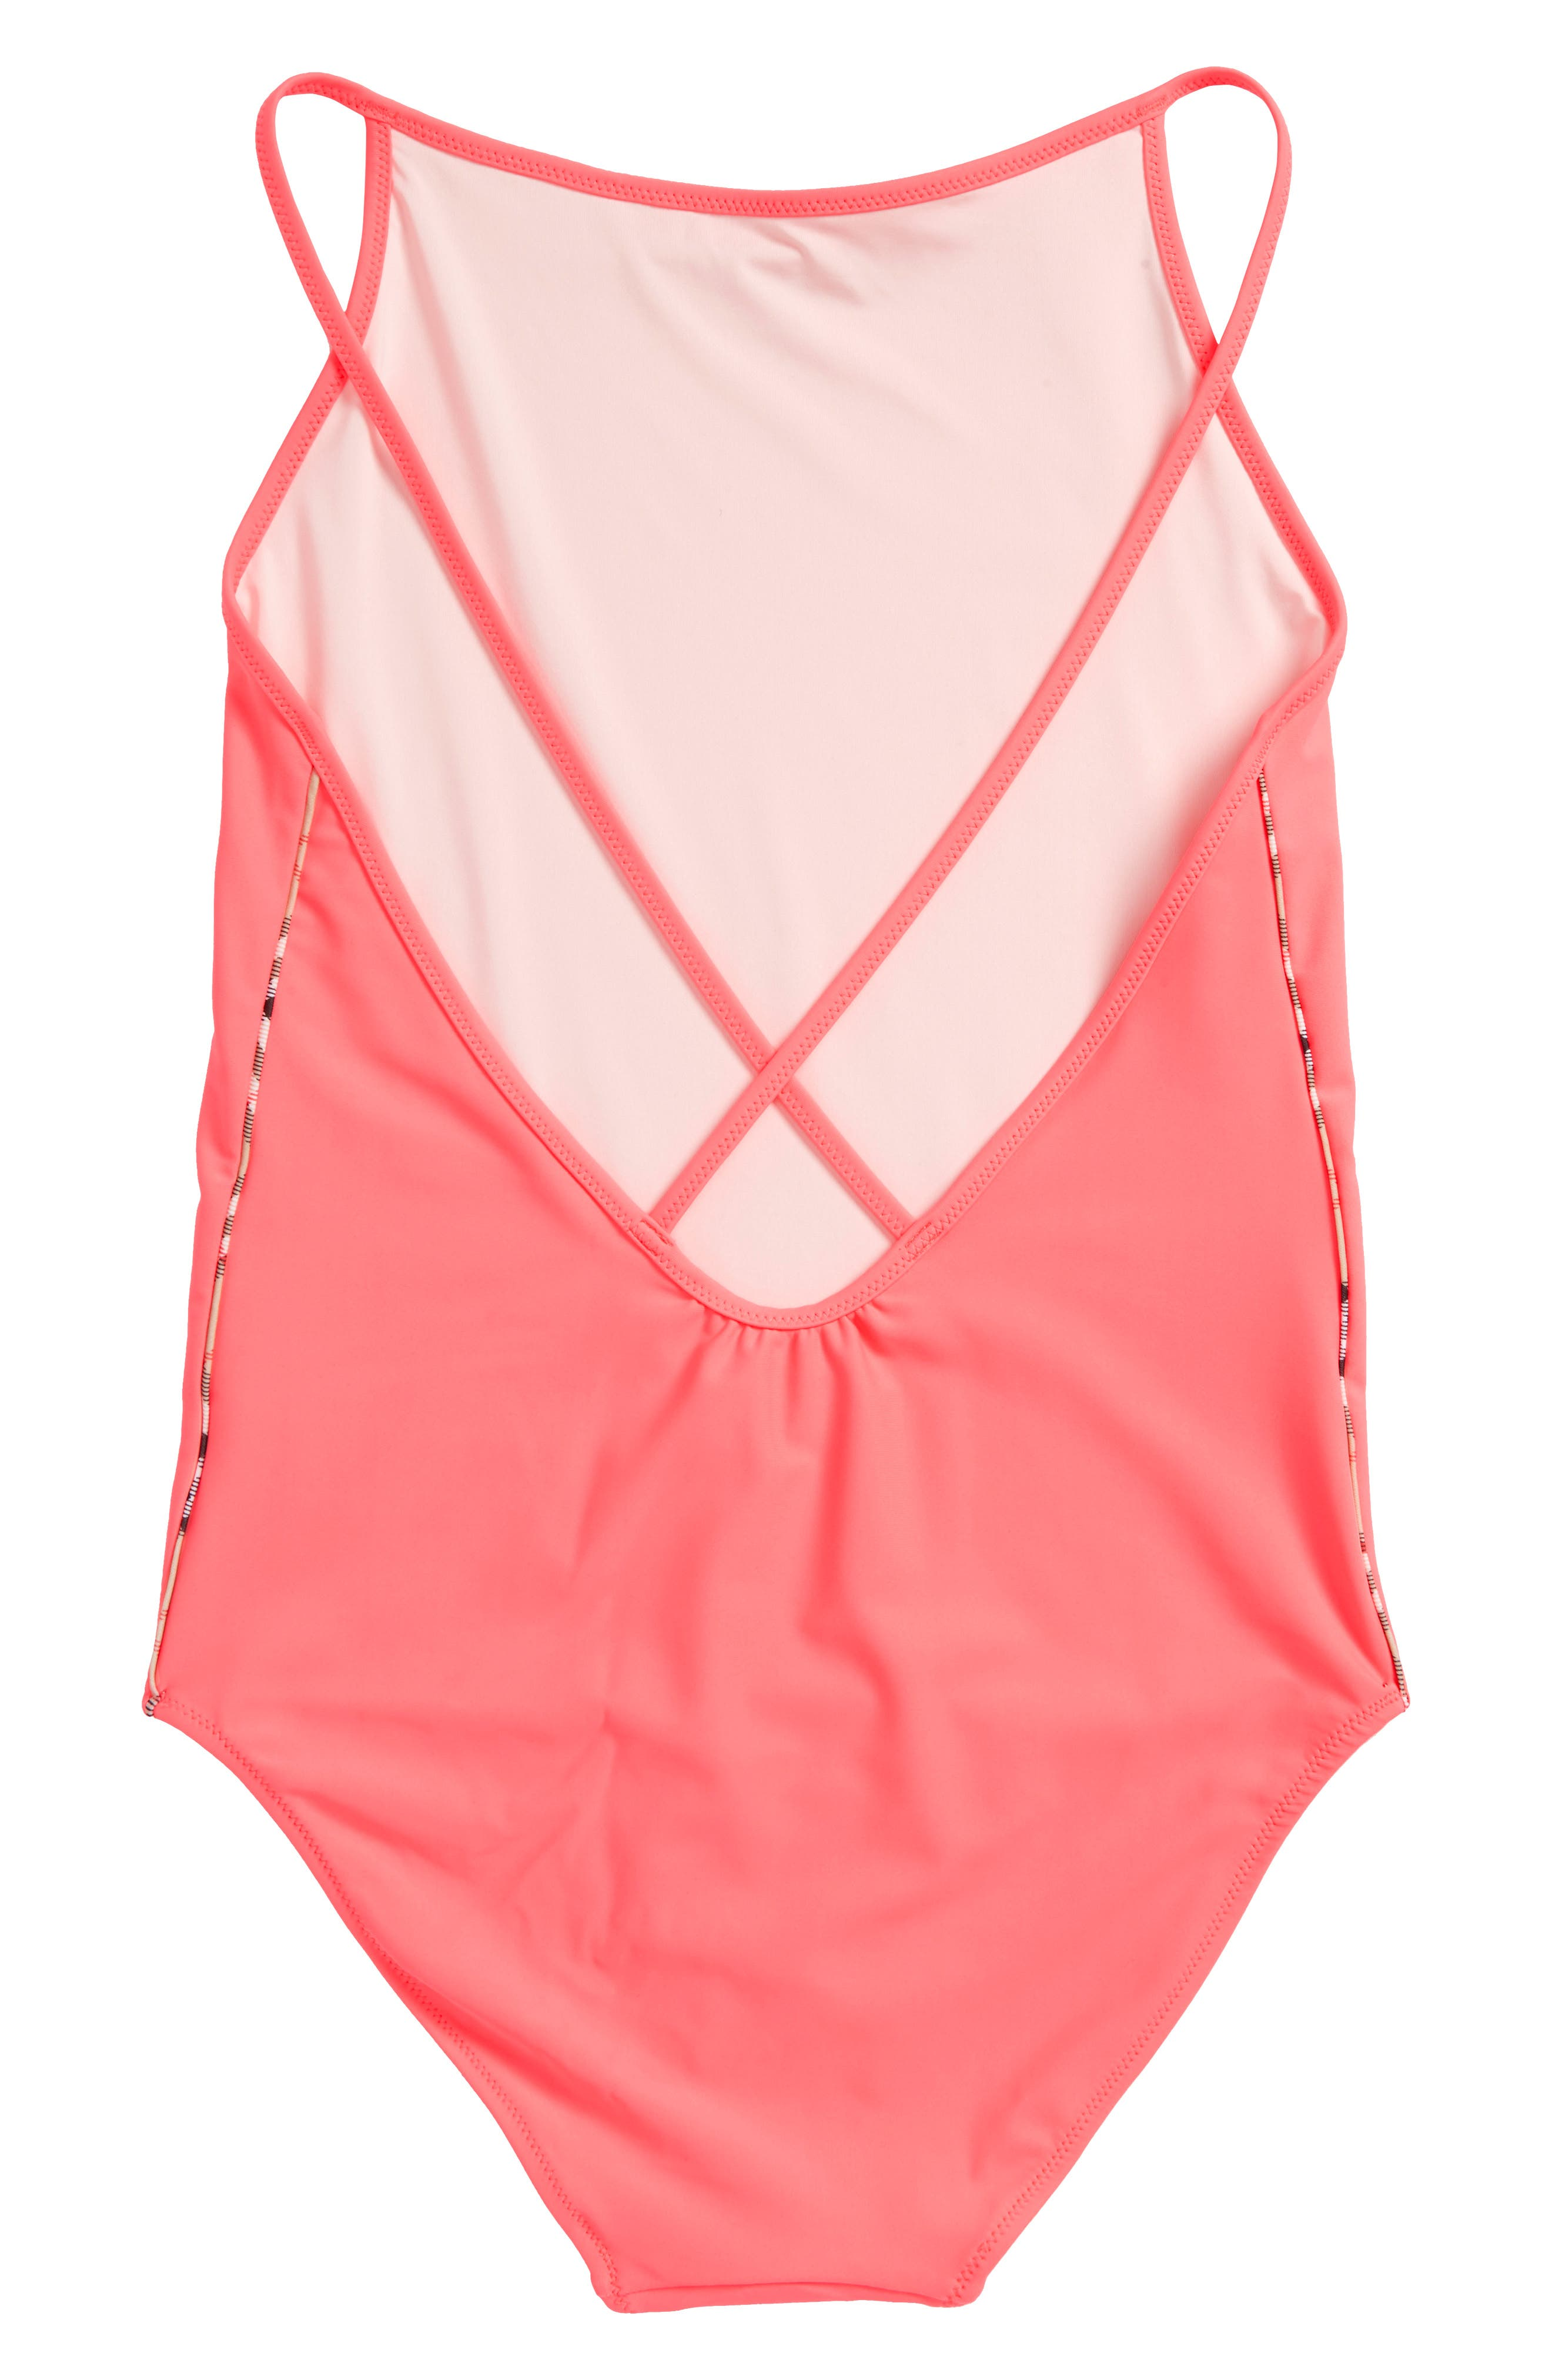 Sandine One-Piece Swimsuit,                             Alternate thumbnail 2, color,                             Bright Coral